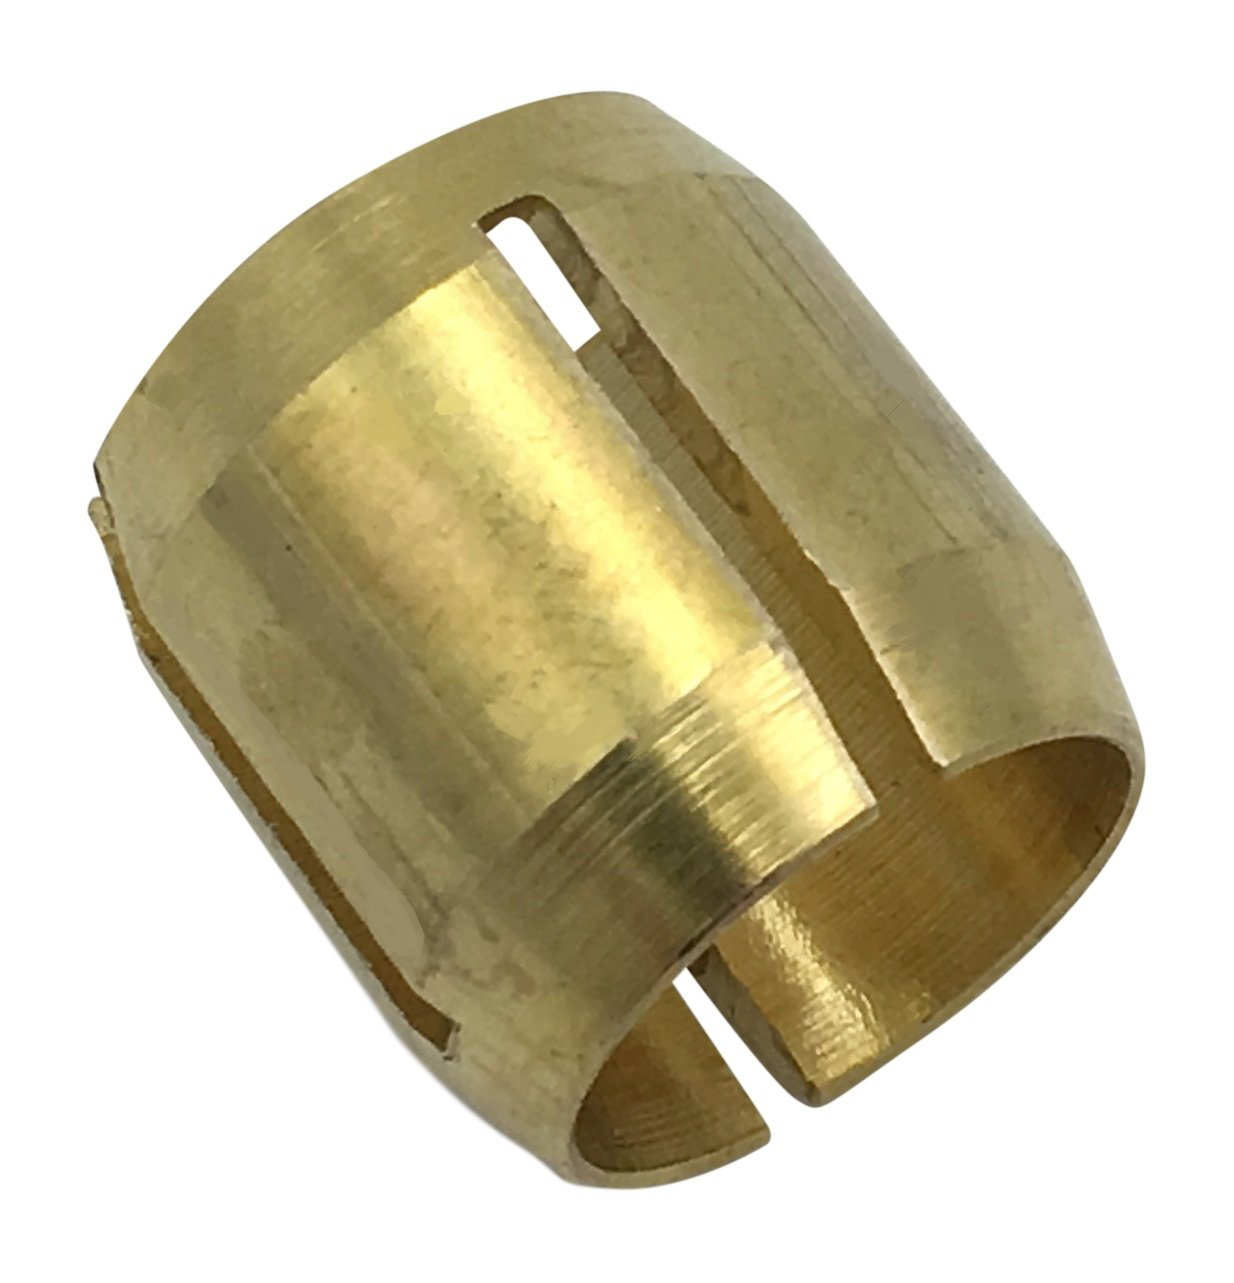 Meyer Gage B145 2W145 Bushing .138 to .145 or 3.51 mm to 3.68 mm